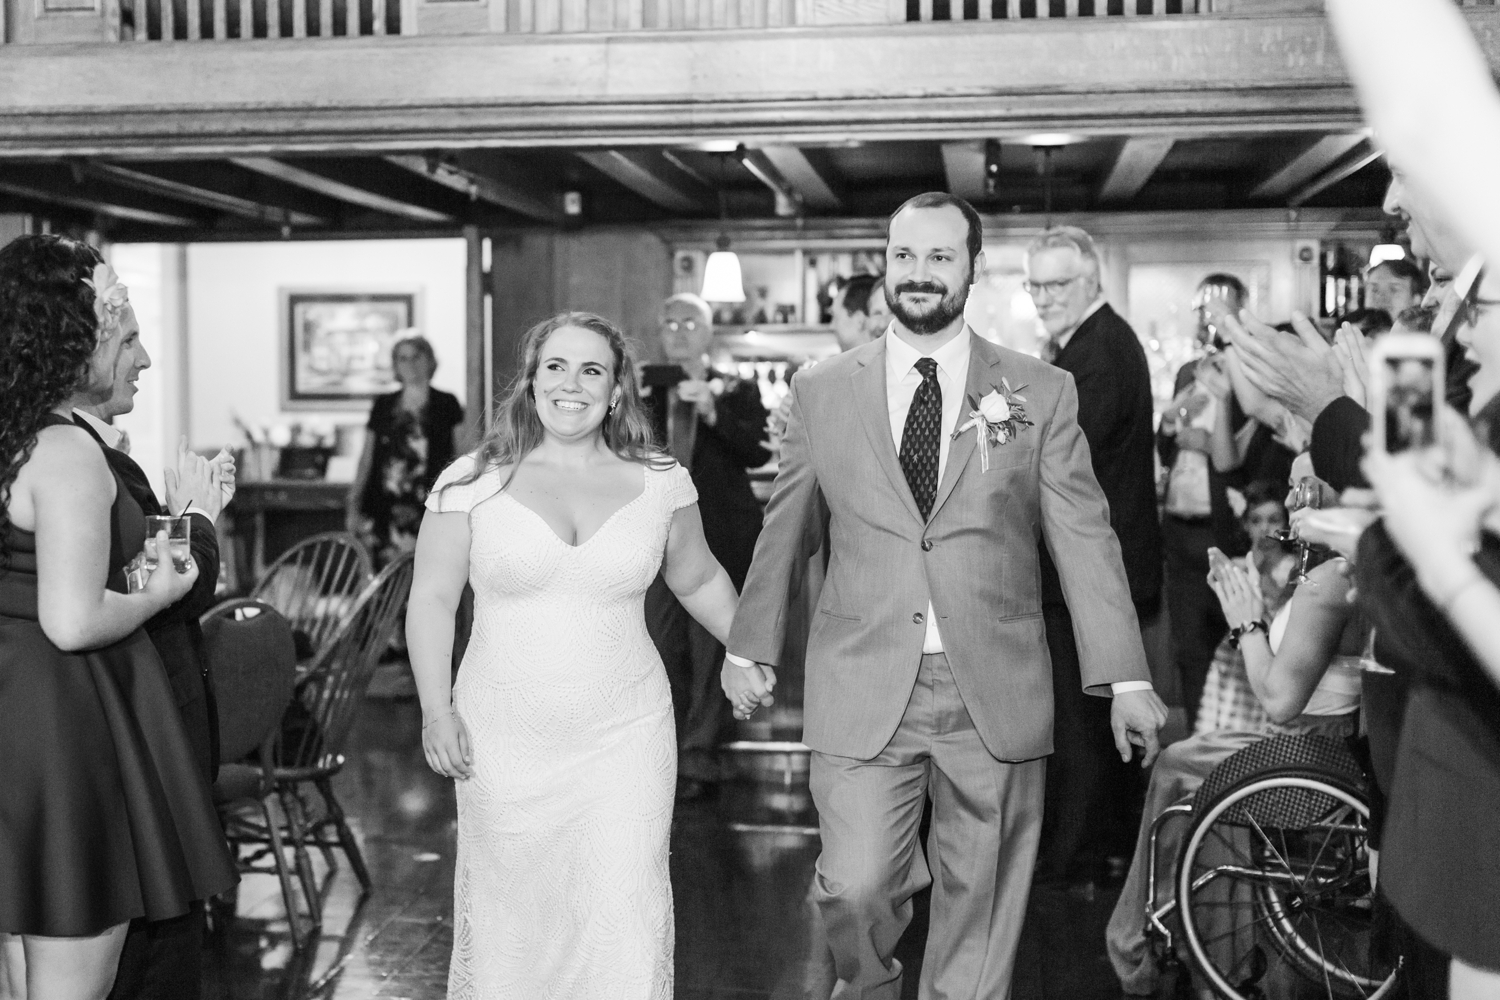 edgerton-park-wedding-new-haven-connecticut-photographer-shaina-lee-photography-photo